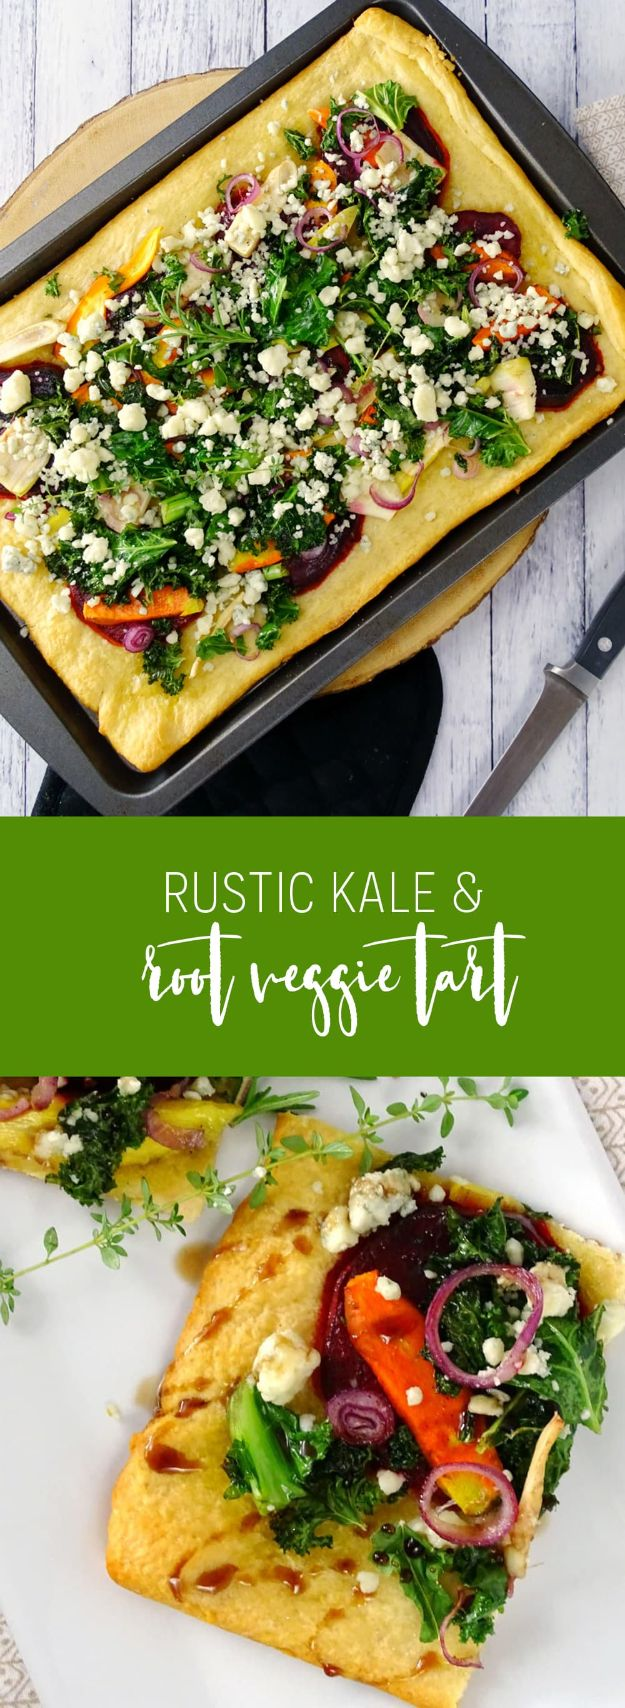 Best Kale Recipes - Rustic Kale and Root Vegetable Tart - Healthy Green Vegetable Cooking for Salads, Soup, Lunches, Stir Fry and Dinner - Kale Chips. Salad, Shredded, Cooked, Fresh and Sauteed Kale - Vegan, Vegetarian, Keto, Low Carb and Lowfat Recipe Ideas #kale #kalerecipes #vegetablerecipes #veggies #recipeideas #dinnerideas http://diyjoy.com/best-kale-recipes